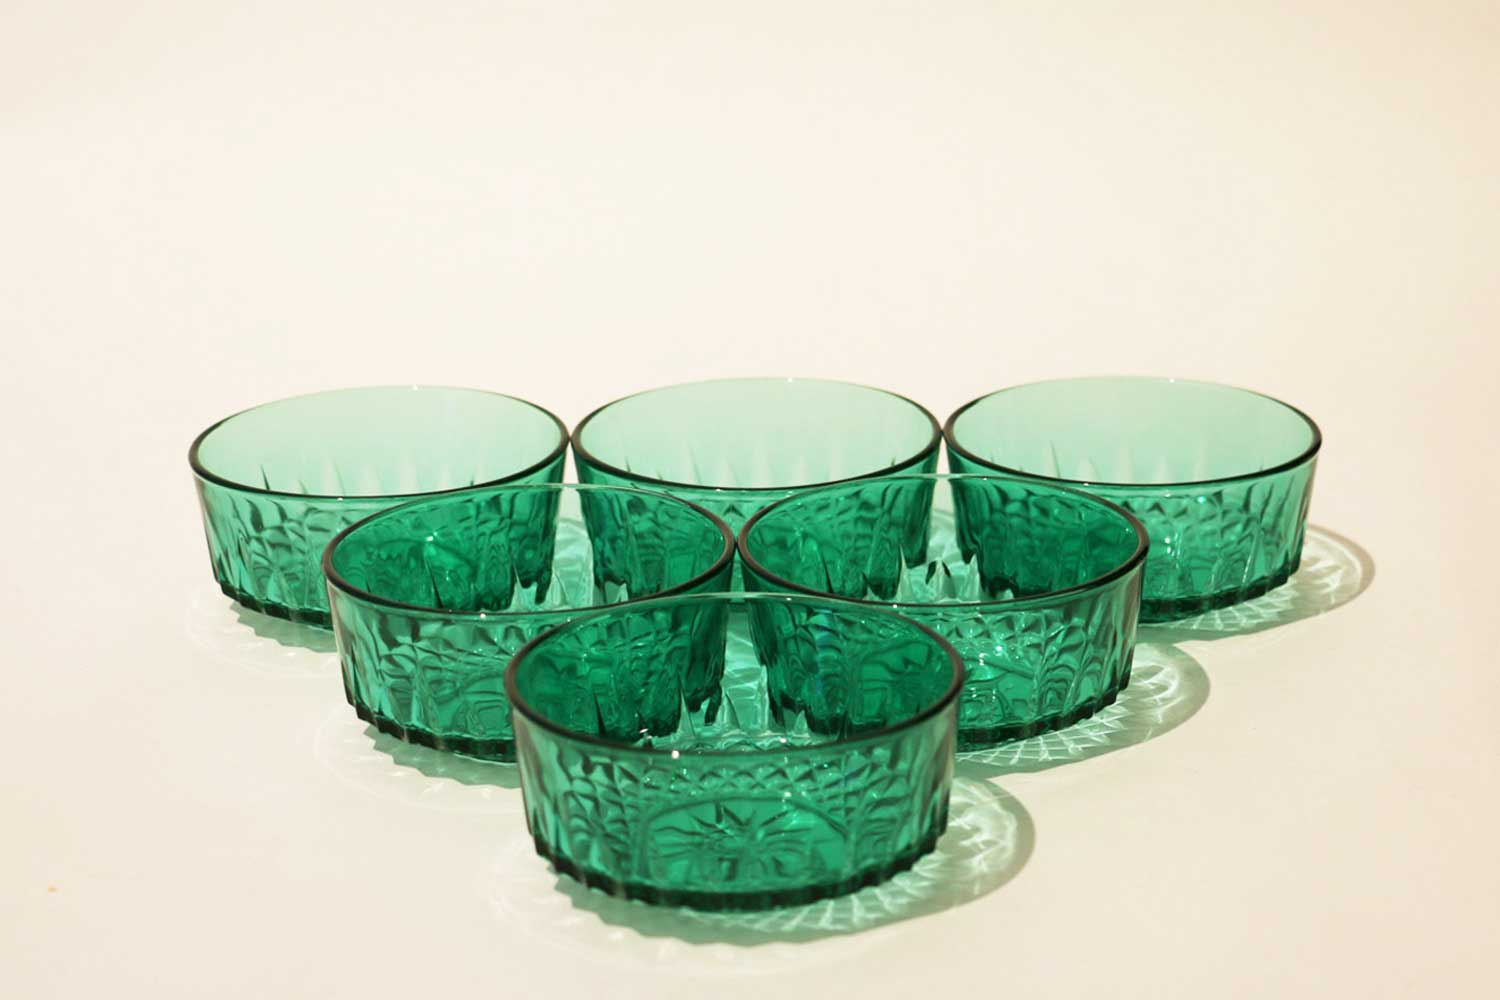 Green glass dessert bowls